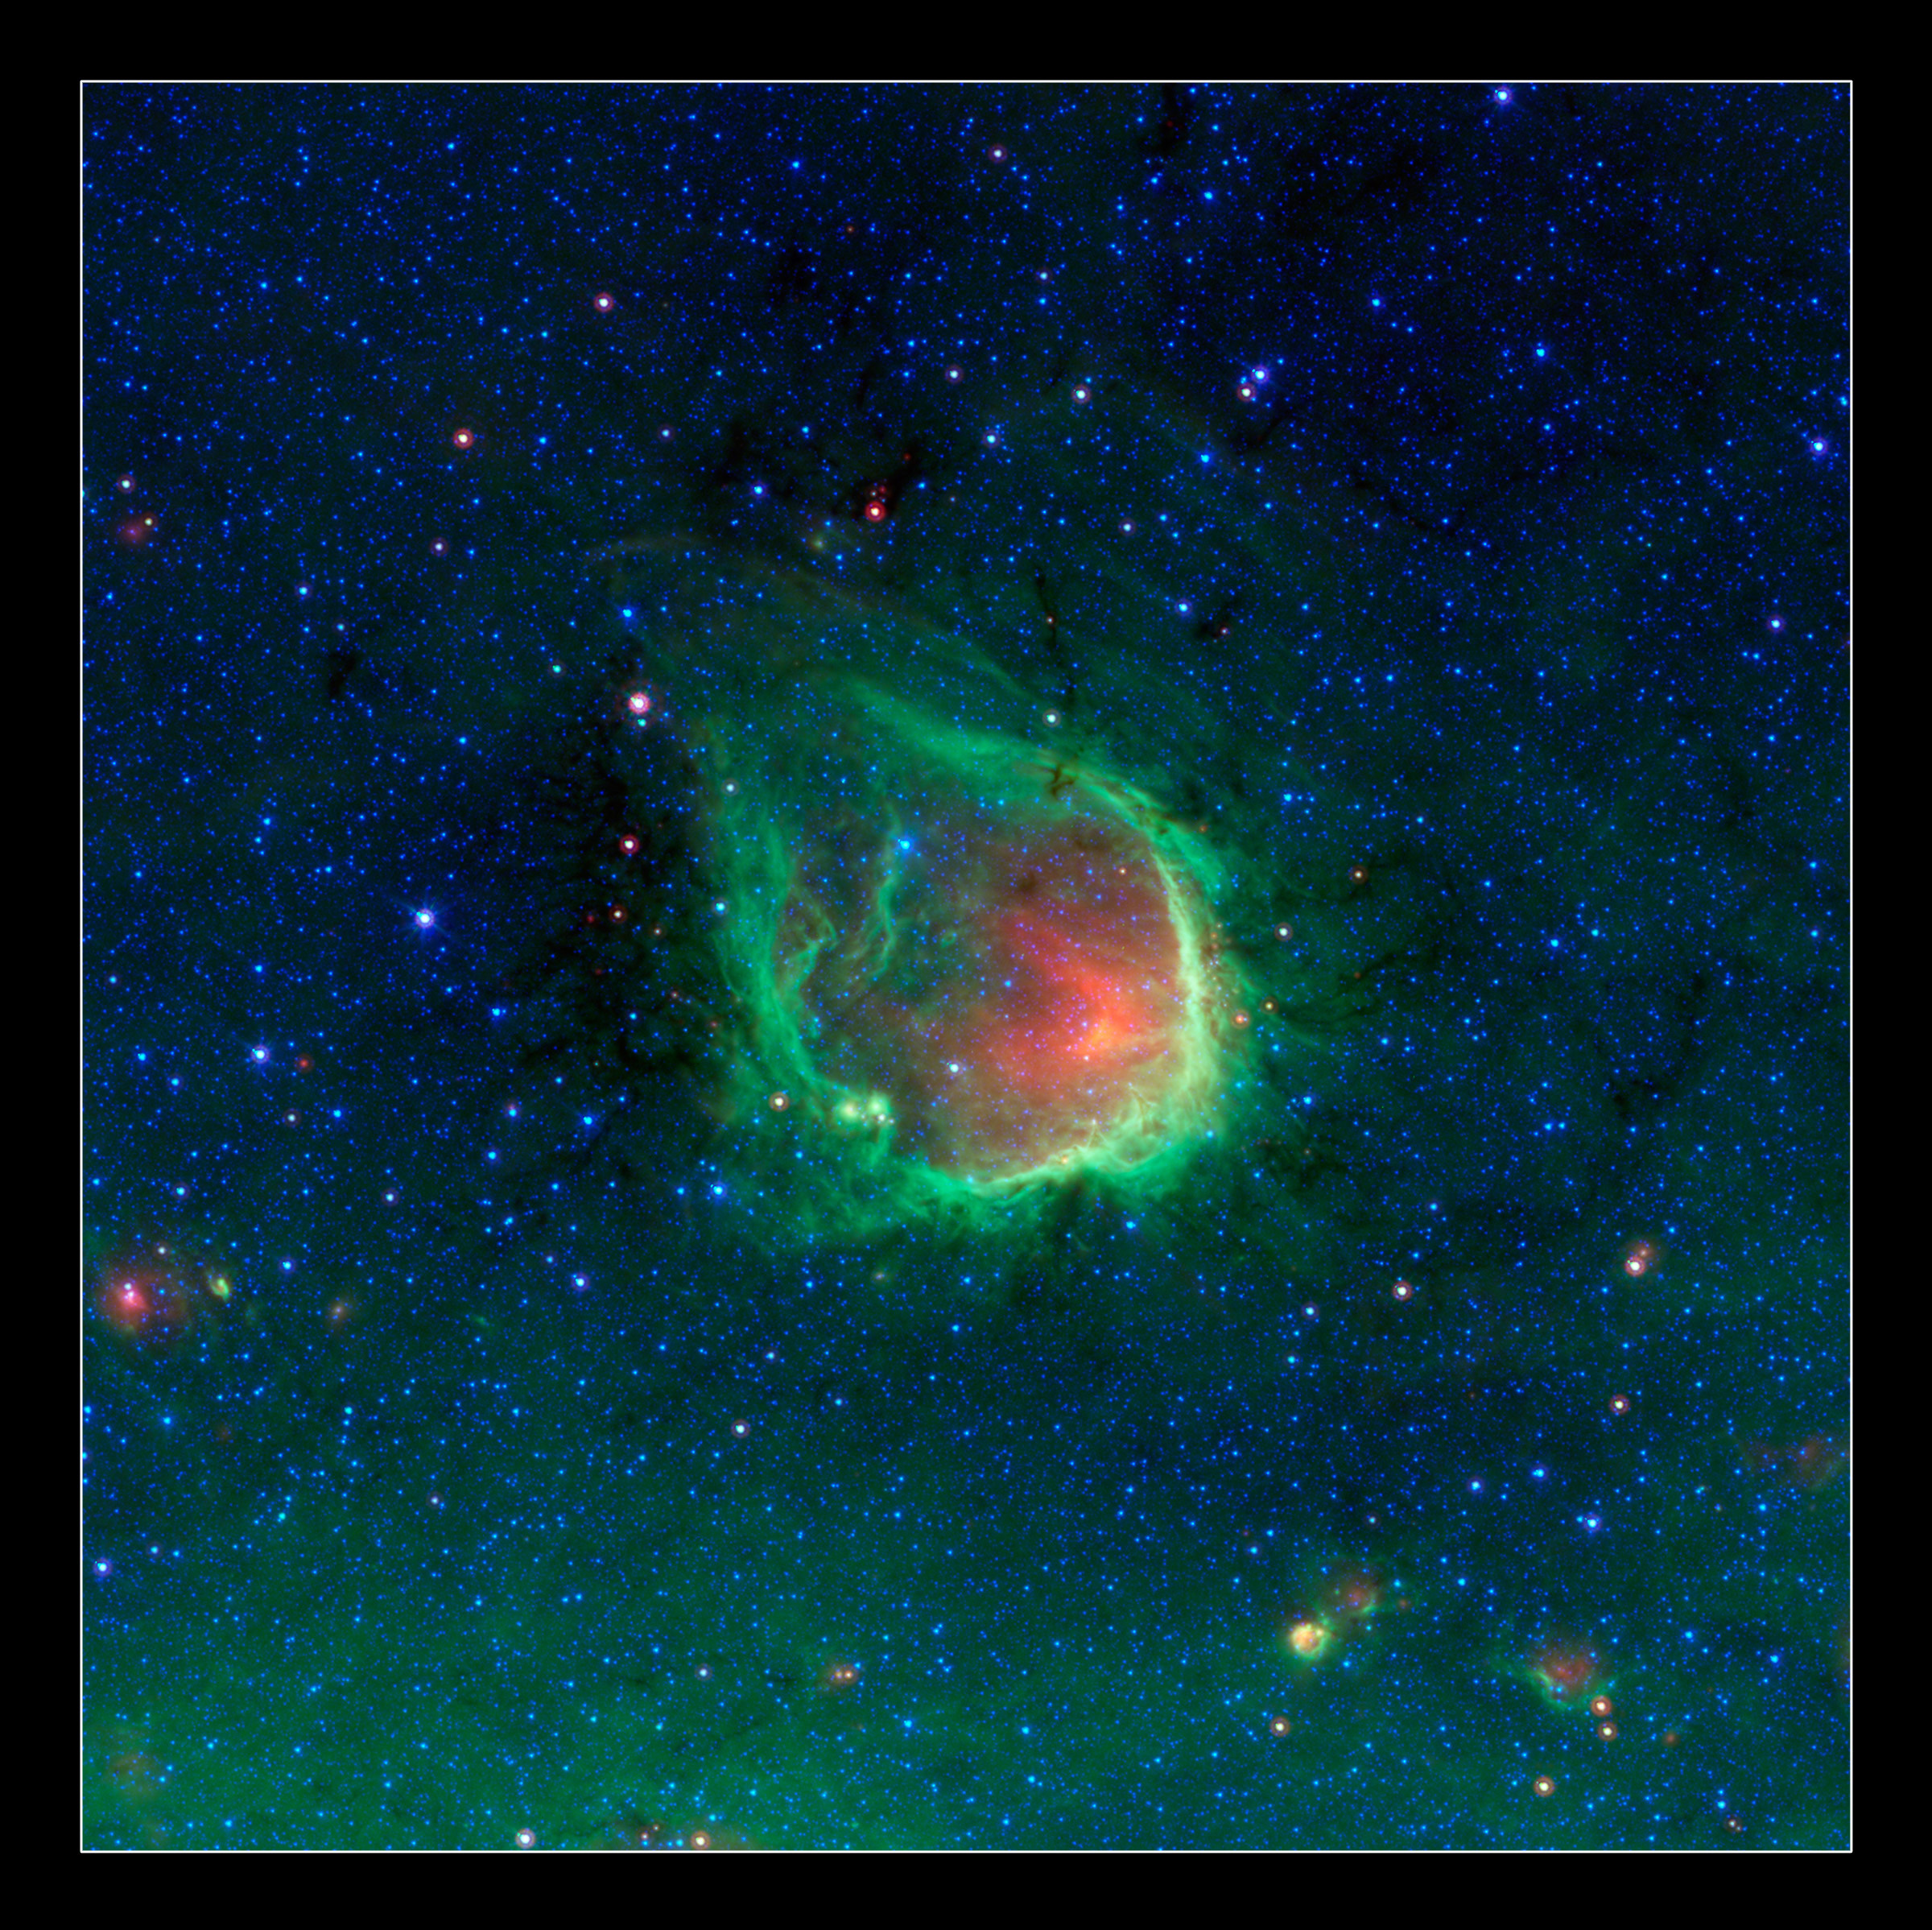 "This glowing emerald nebula seen by Spitzer is reminiscent of the glowing ring wielded by the superhero Green Lantern. Astronomers believe rings like this are actually sculpted by the powerful light of giant ""O"" stars. Named RCW 120 by astronomers, this region of hot gas and glowing dust can be found in the constellation Scorpius. Image: NASA/JPL-Caltech/GLIMPSE-MIPSGAL Teams"